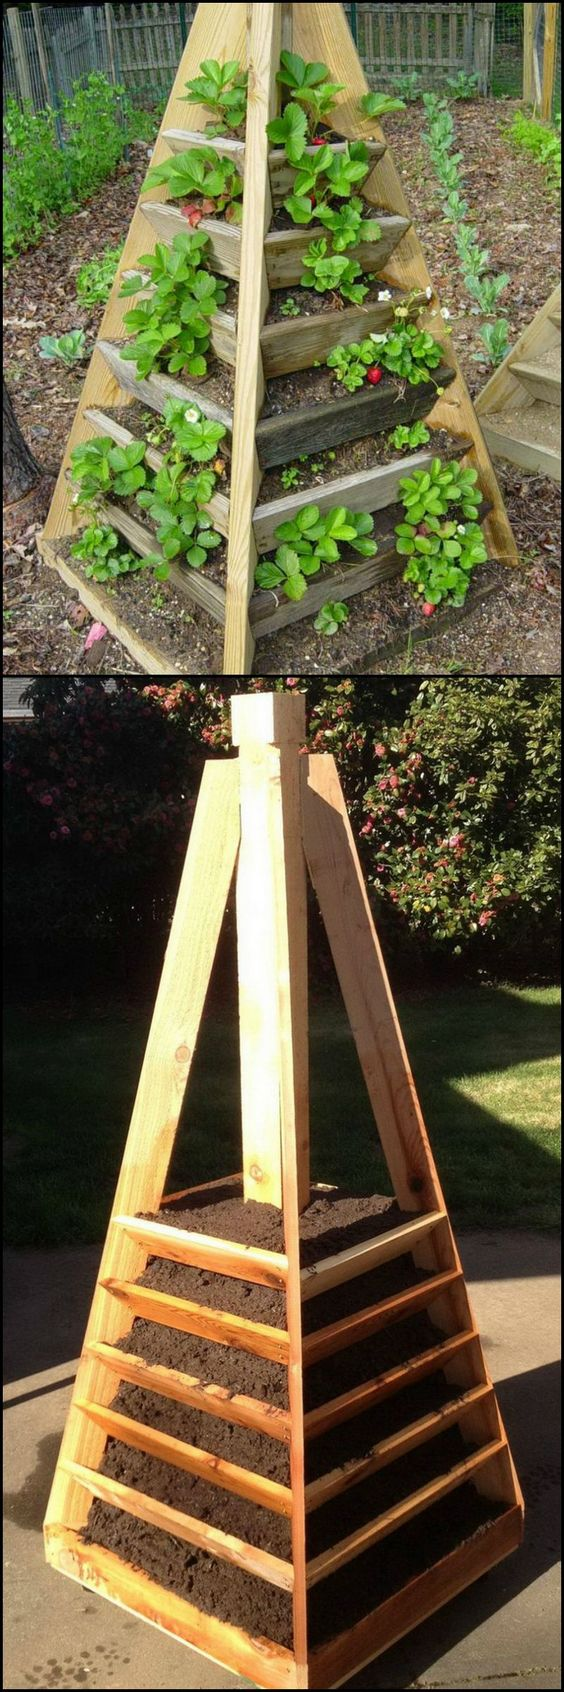 """Strawberries are easy to grow, but can take up a lot of room when planted as a traditional """"strawberry patch"""".     This pyramid planter gives you home grown strawberries while taking up only a fraction of the space of a typical garden.  Discover what's possible with vertical gardening by viewing the full album on our site at http://theownerbuildernetwork.co/iz9i"""